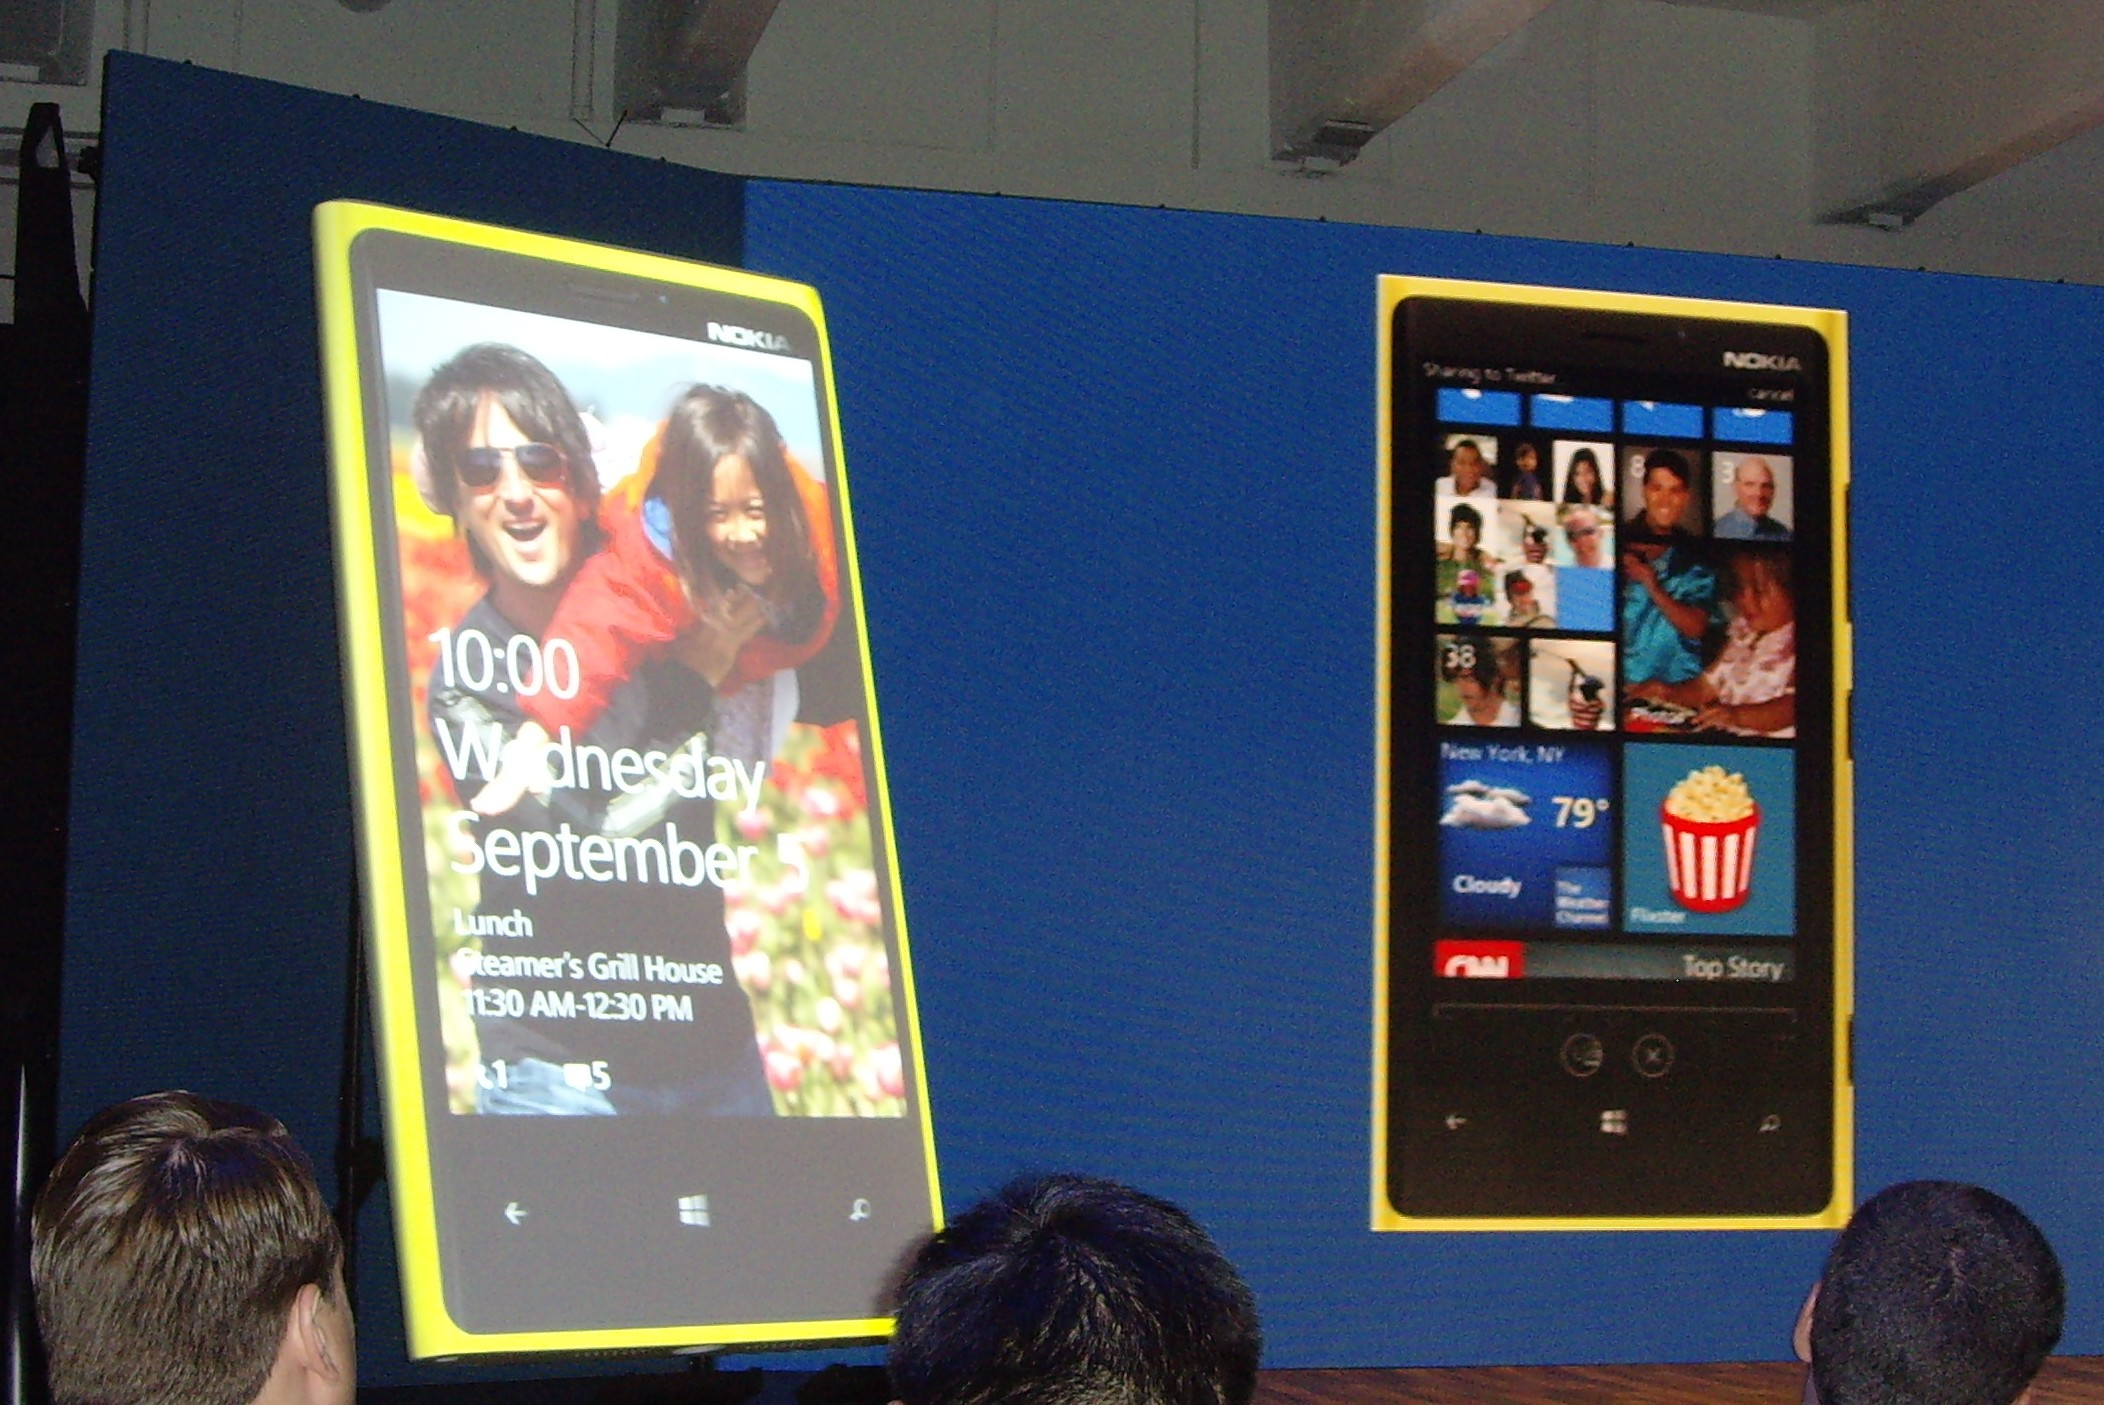 Nokia Lumia 920, Windows Phone 8